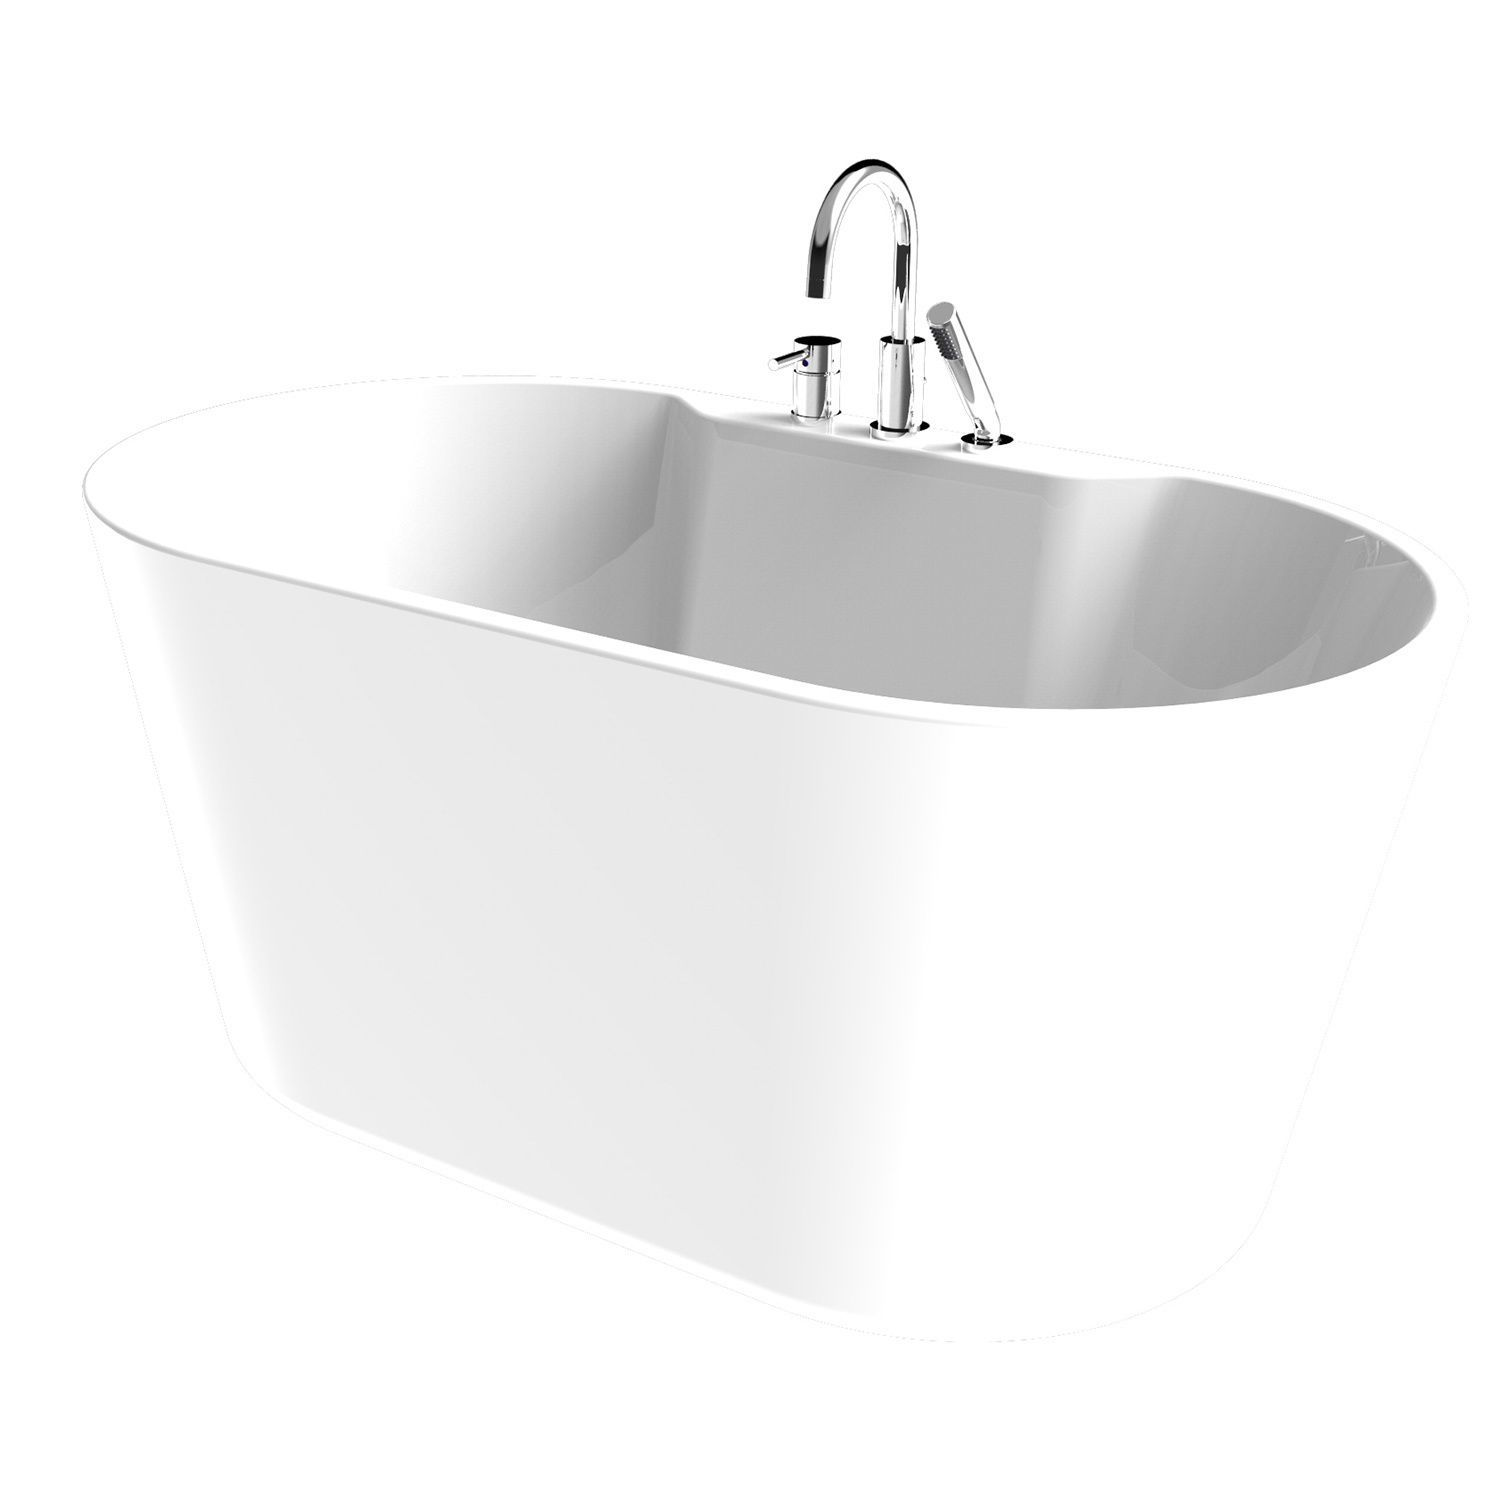 Retro All-In-One Free-Standing Tub Combo